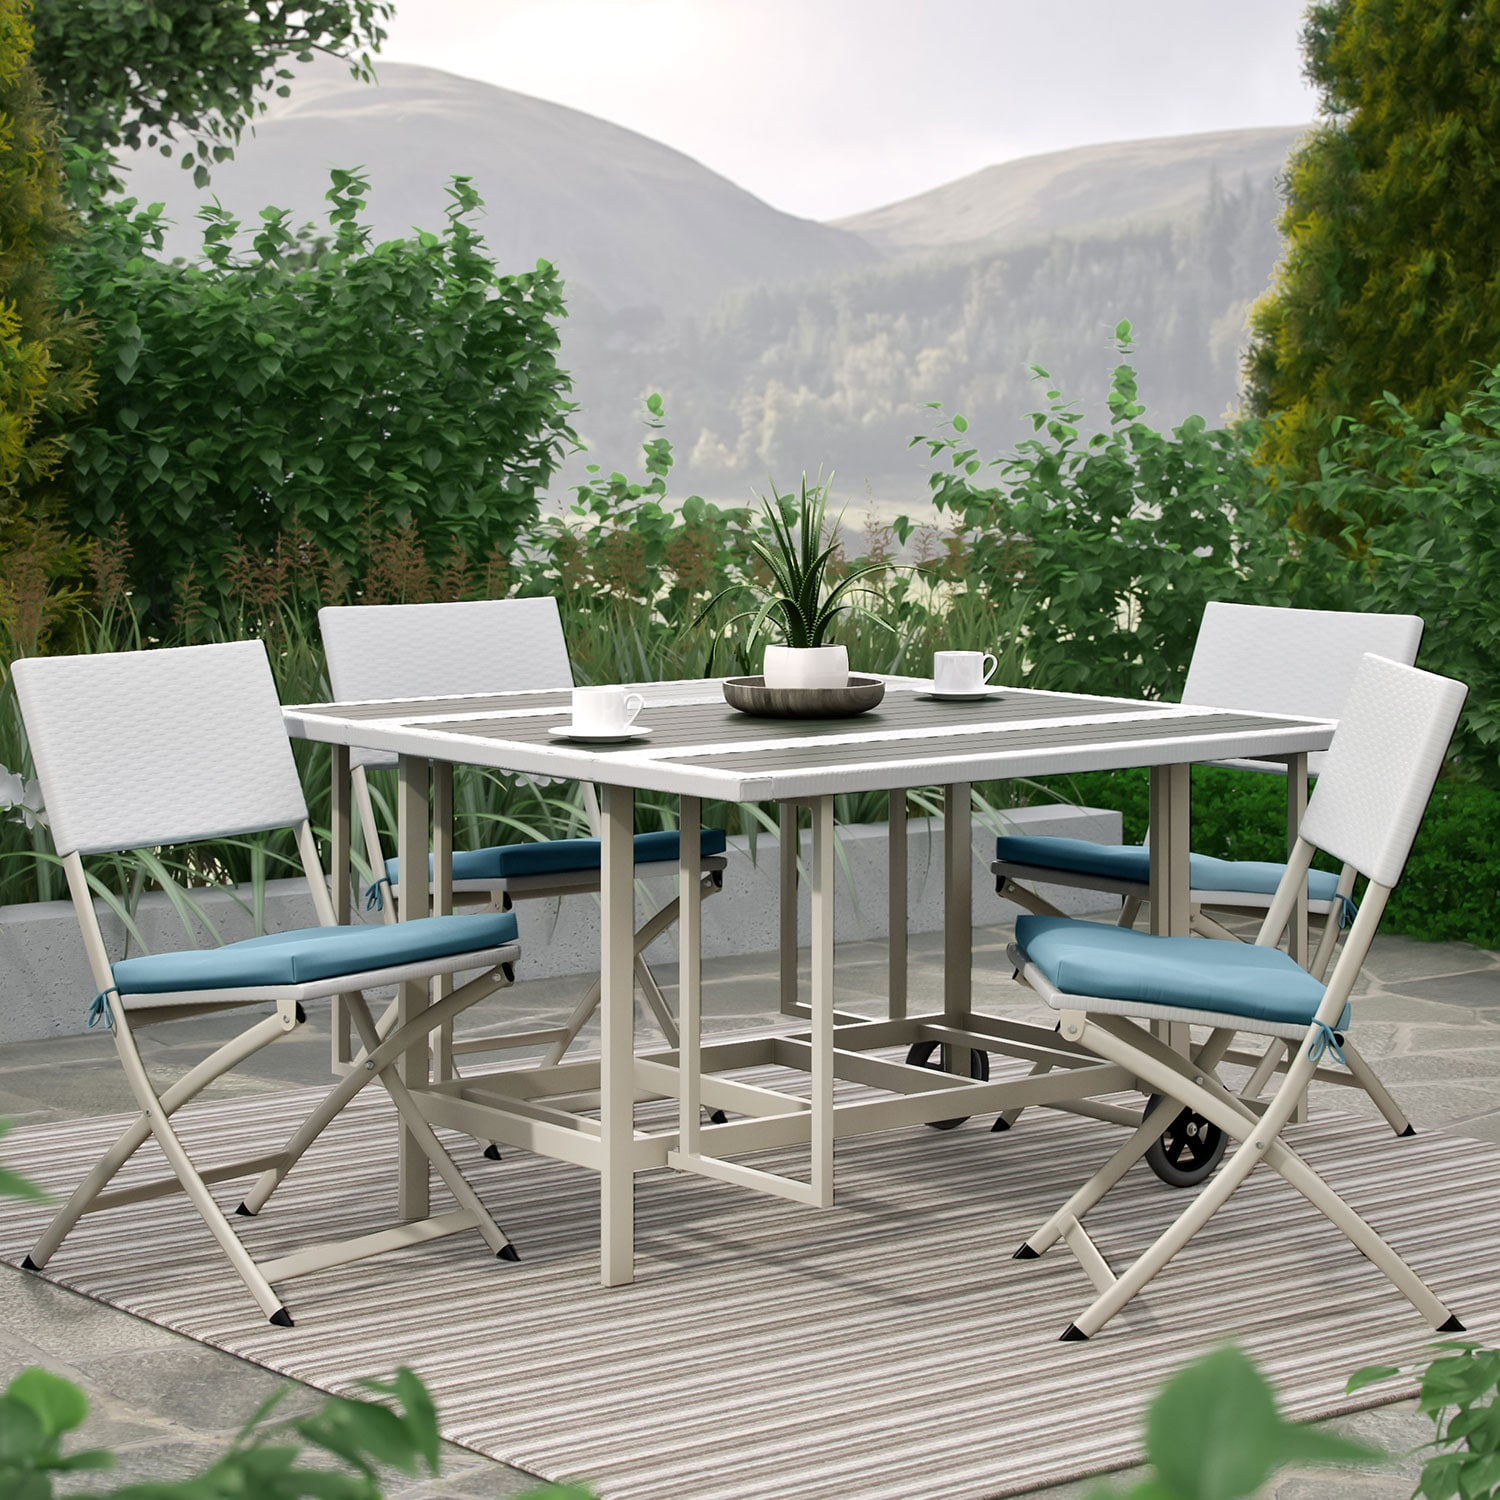 Stowable Folding 5-Piece Patio Dining Set